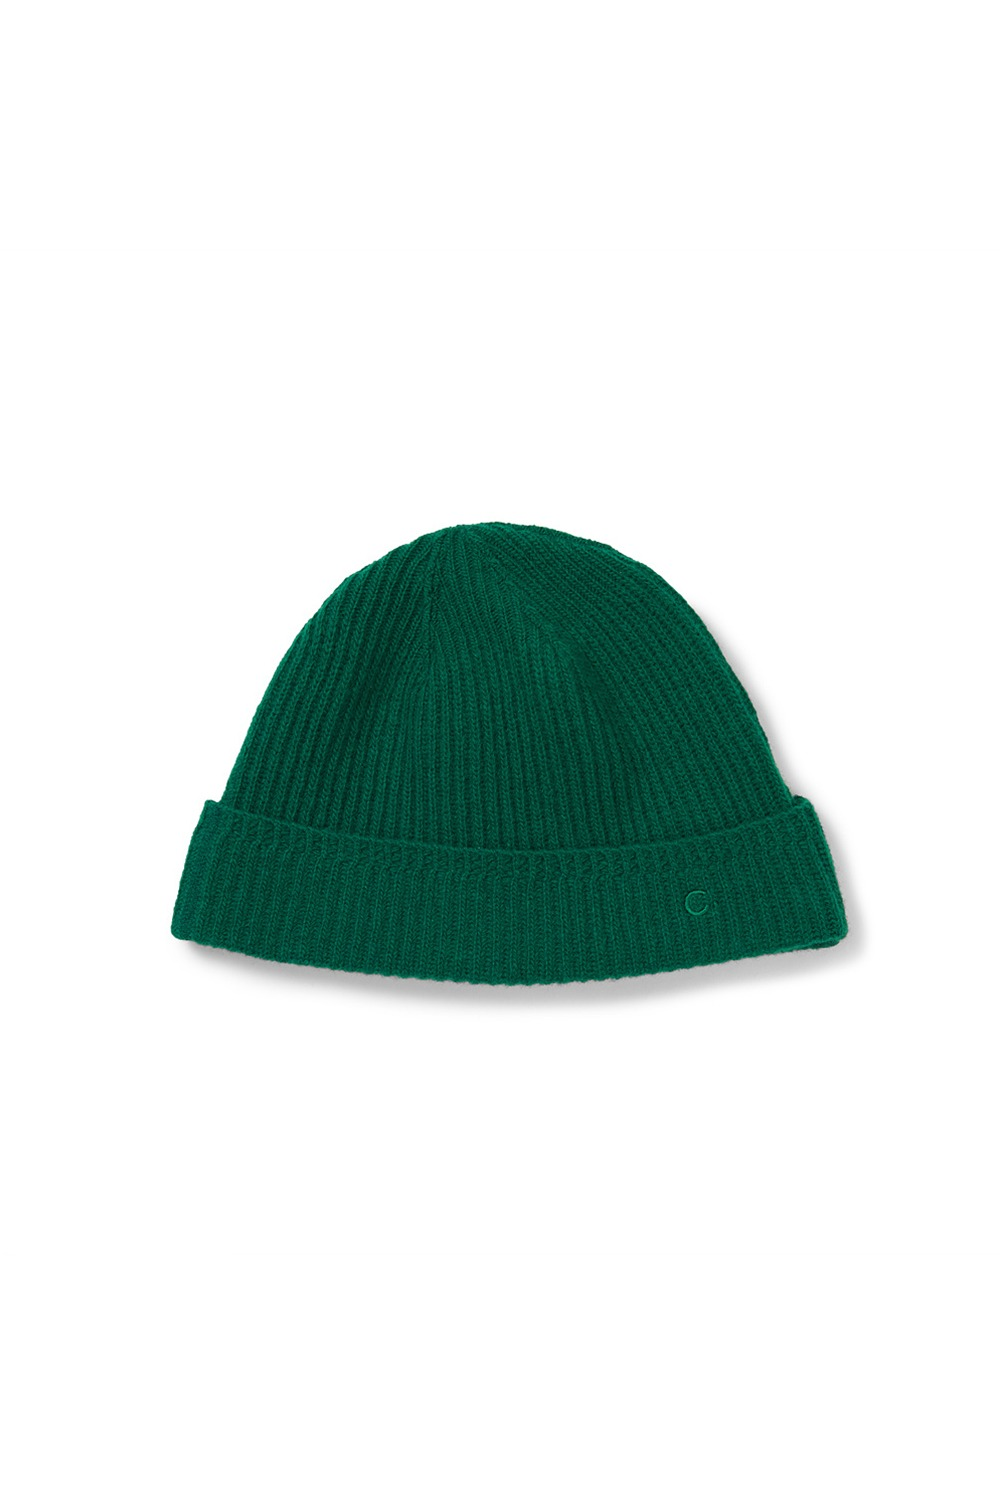 [FW20 CLOVE] Wool Knit Beanie (Dark Green)